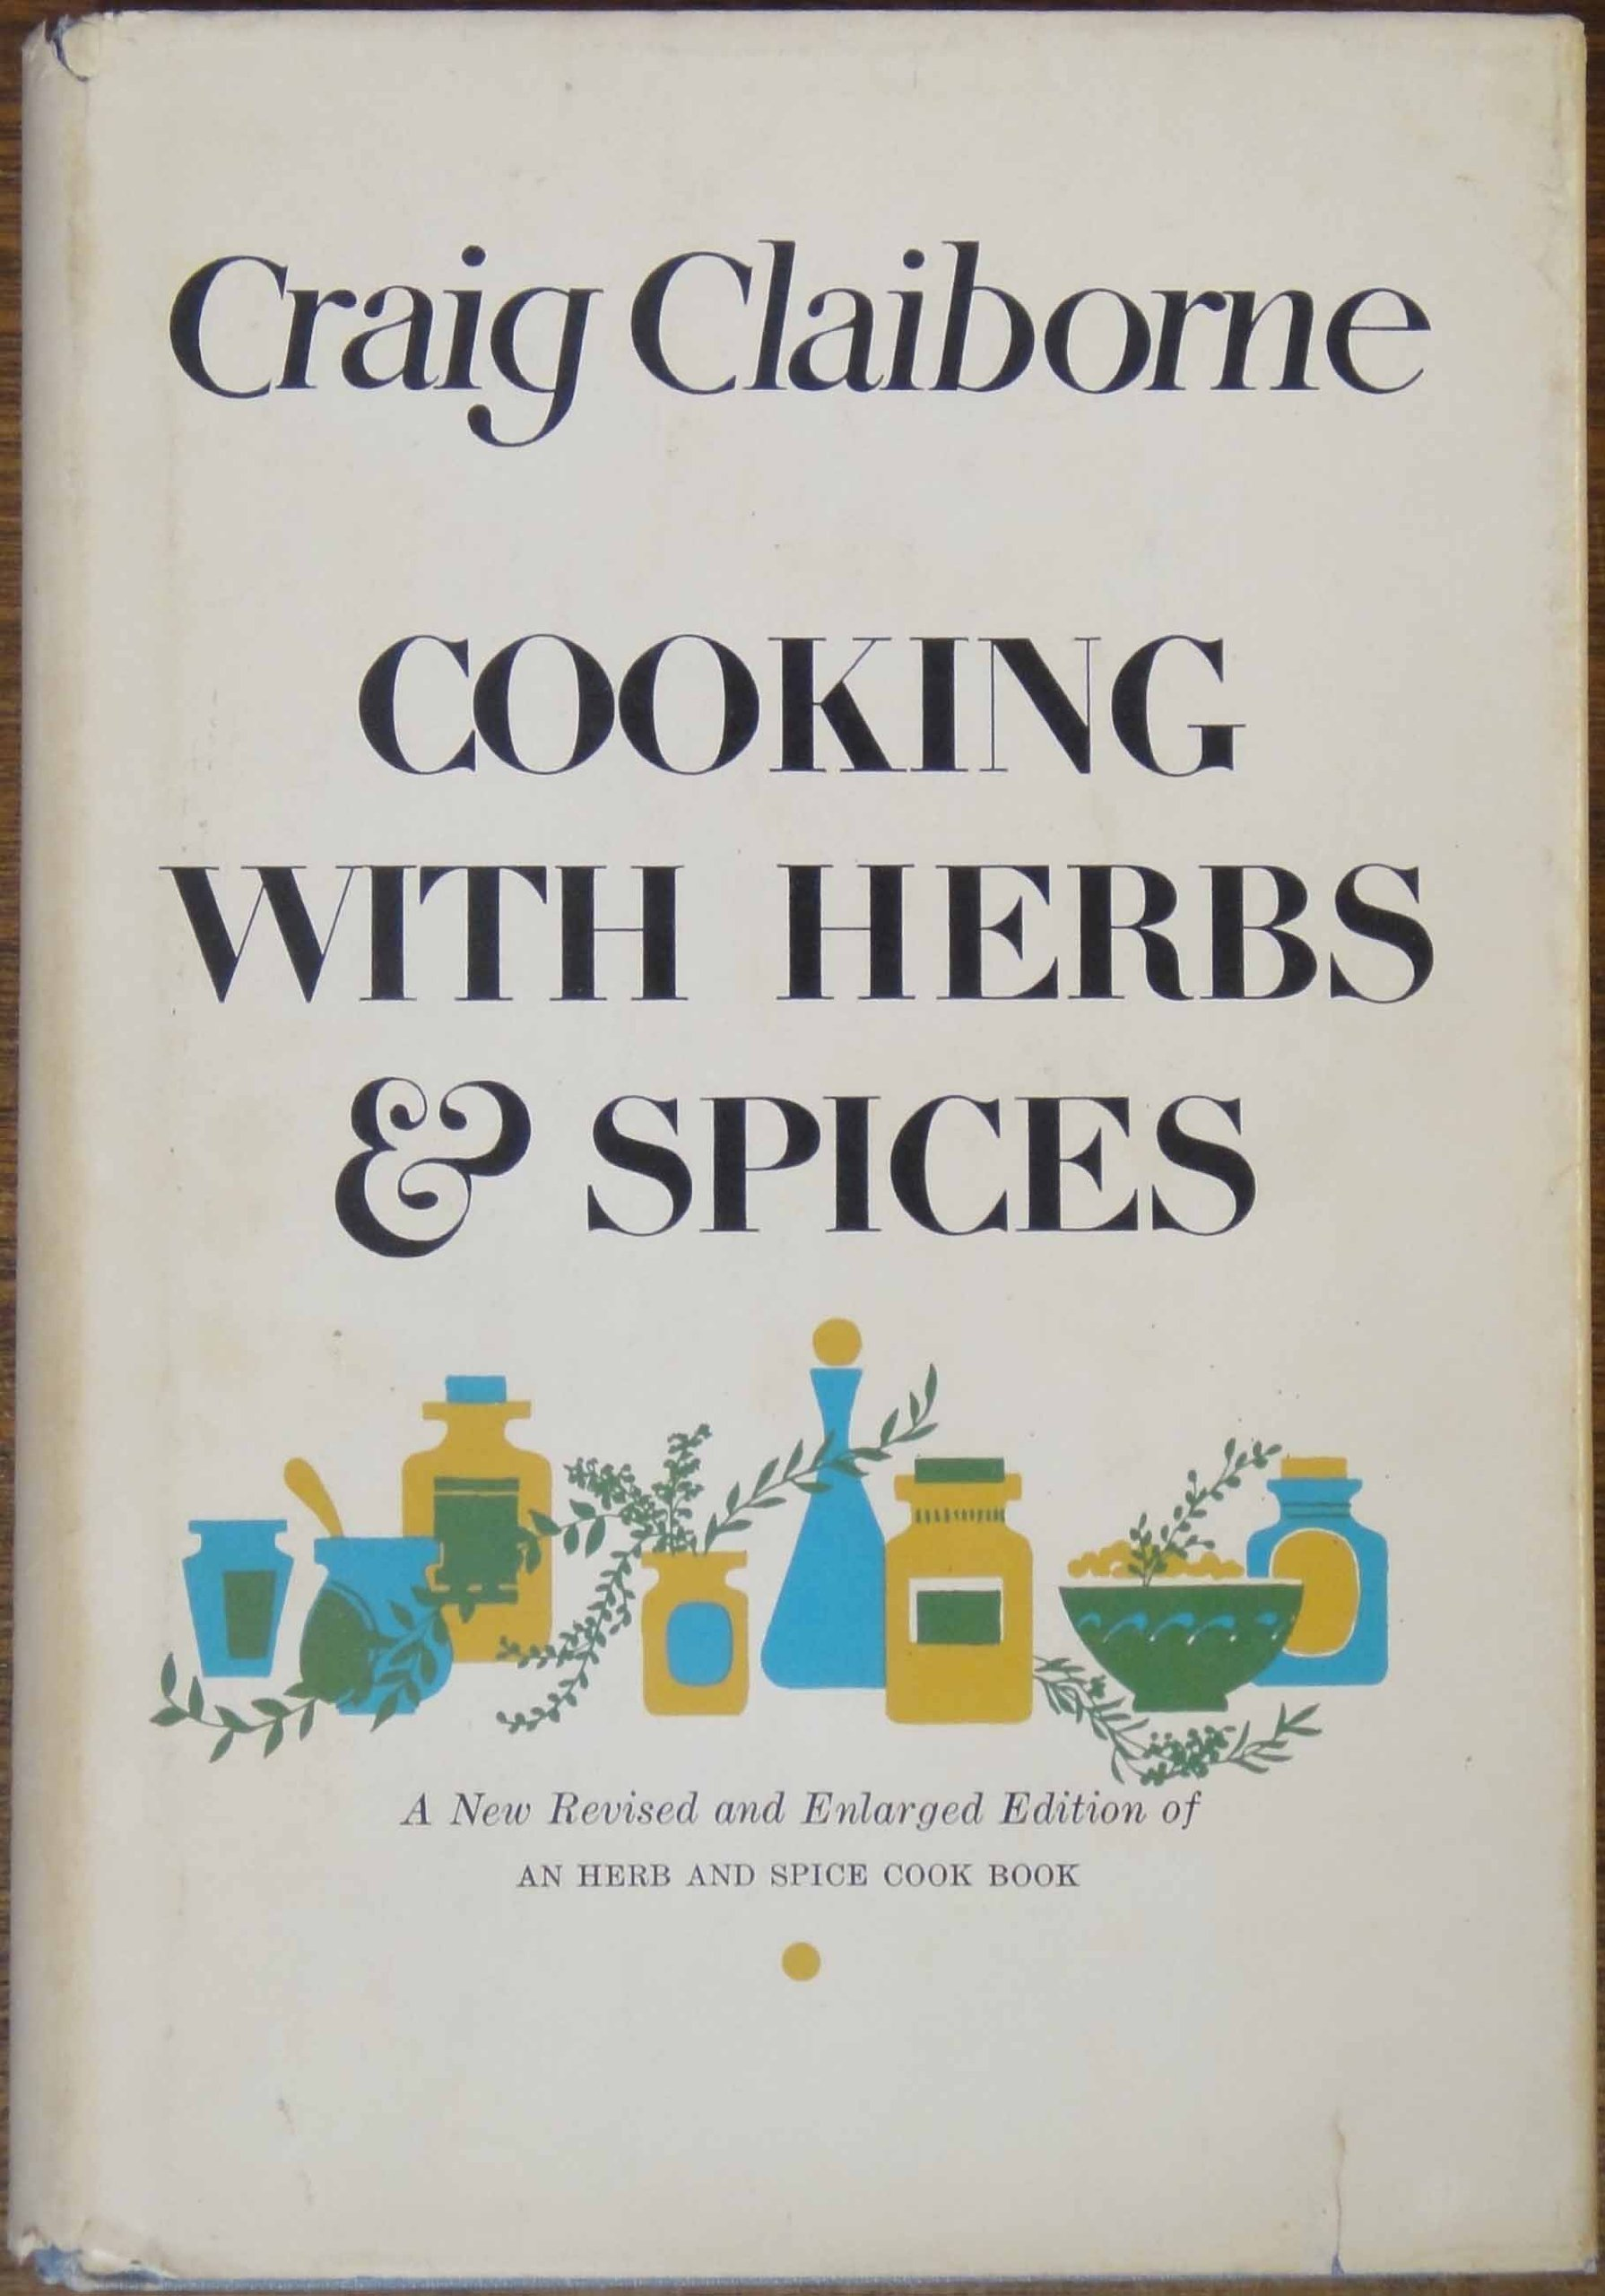 Cooking with Herbs and Spices: Craig Claiborne, Alice Golden